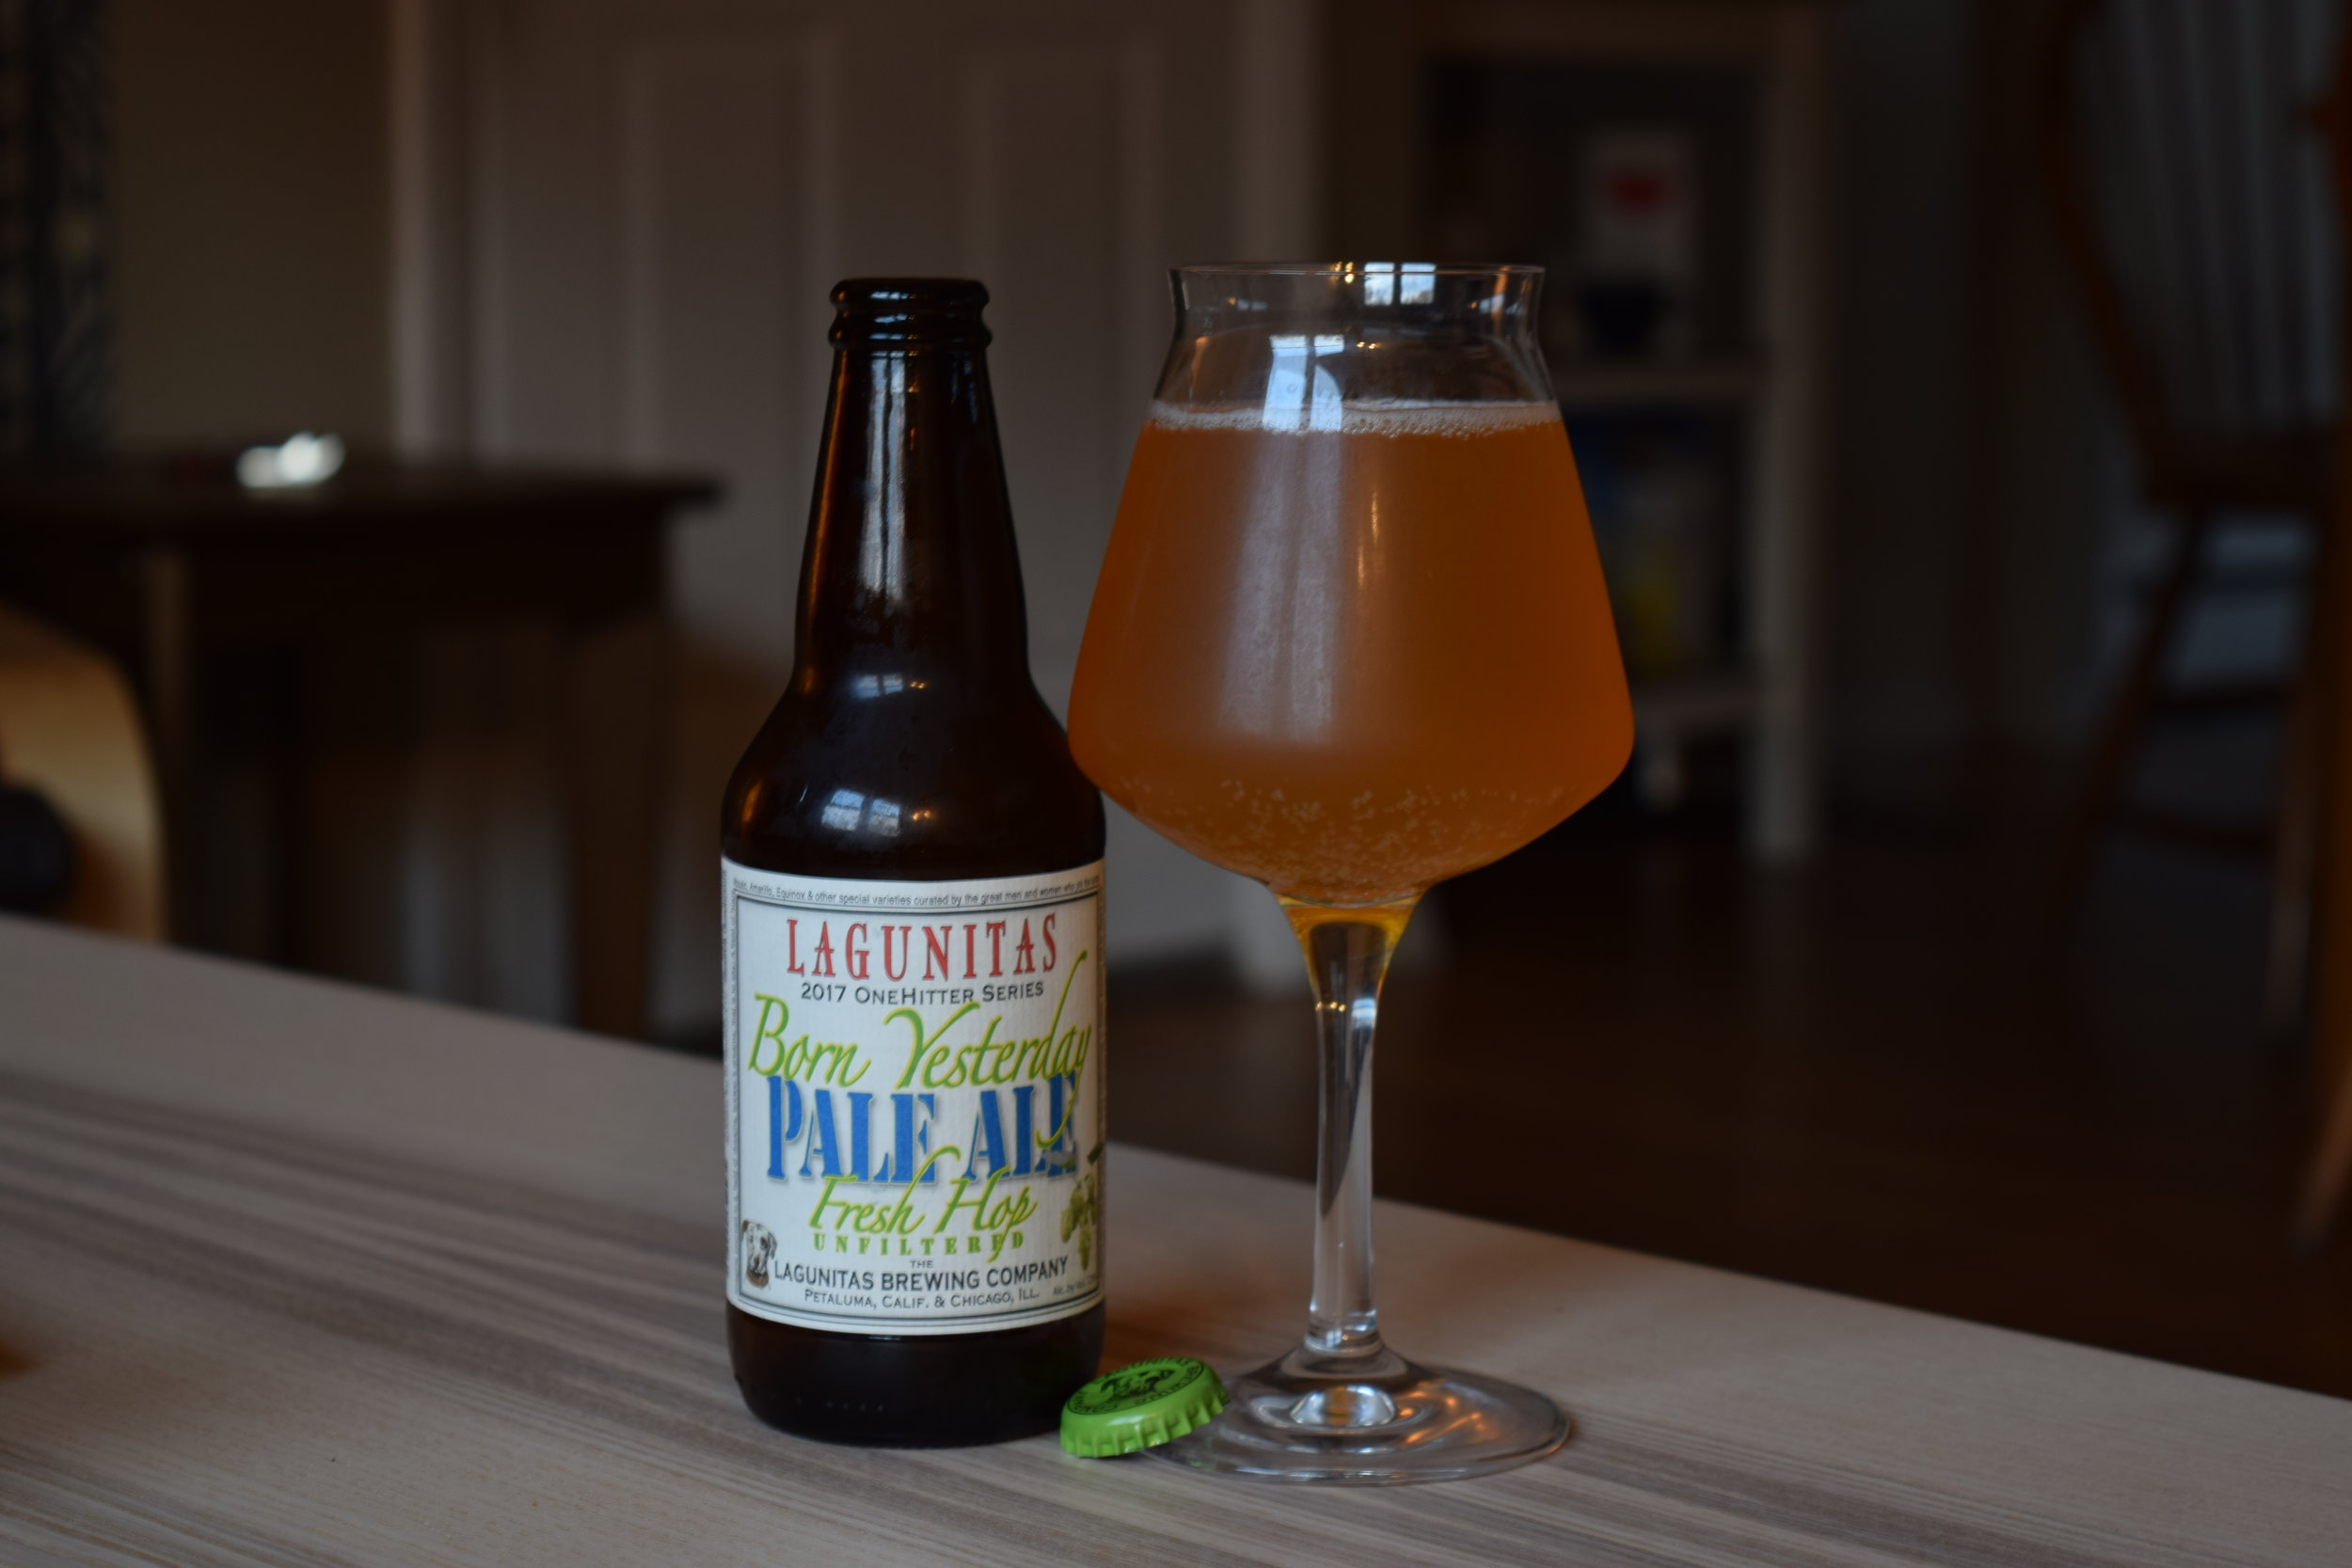 This really is a tasty beer. Few other breweries with distribution as widespread as Lagunitas can produce this level of quality. (File/The Daily Campus)